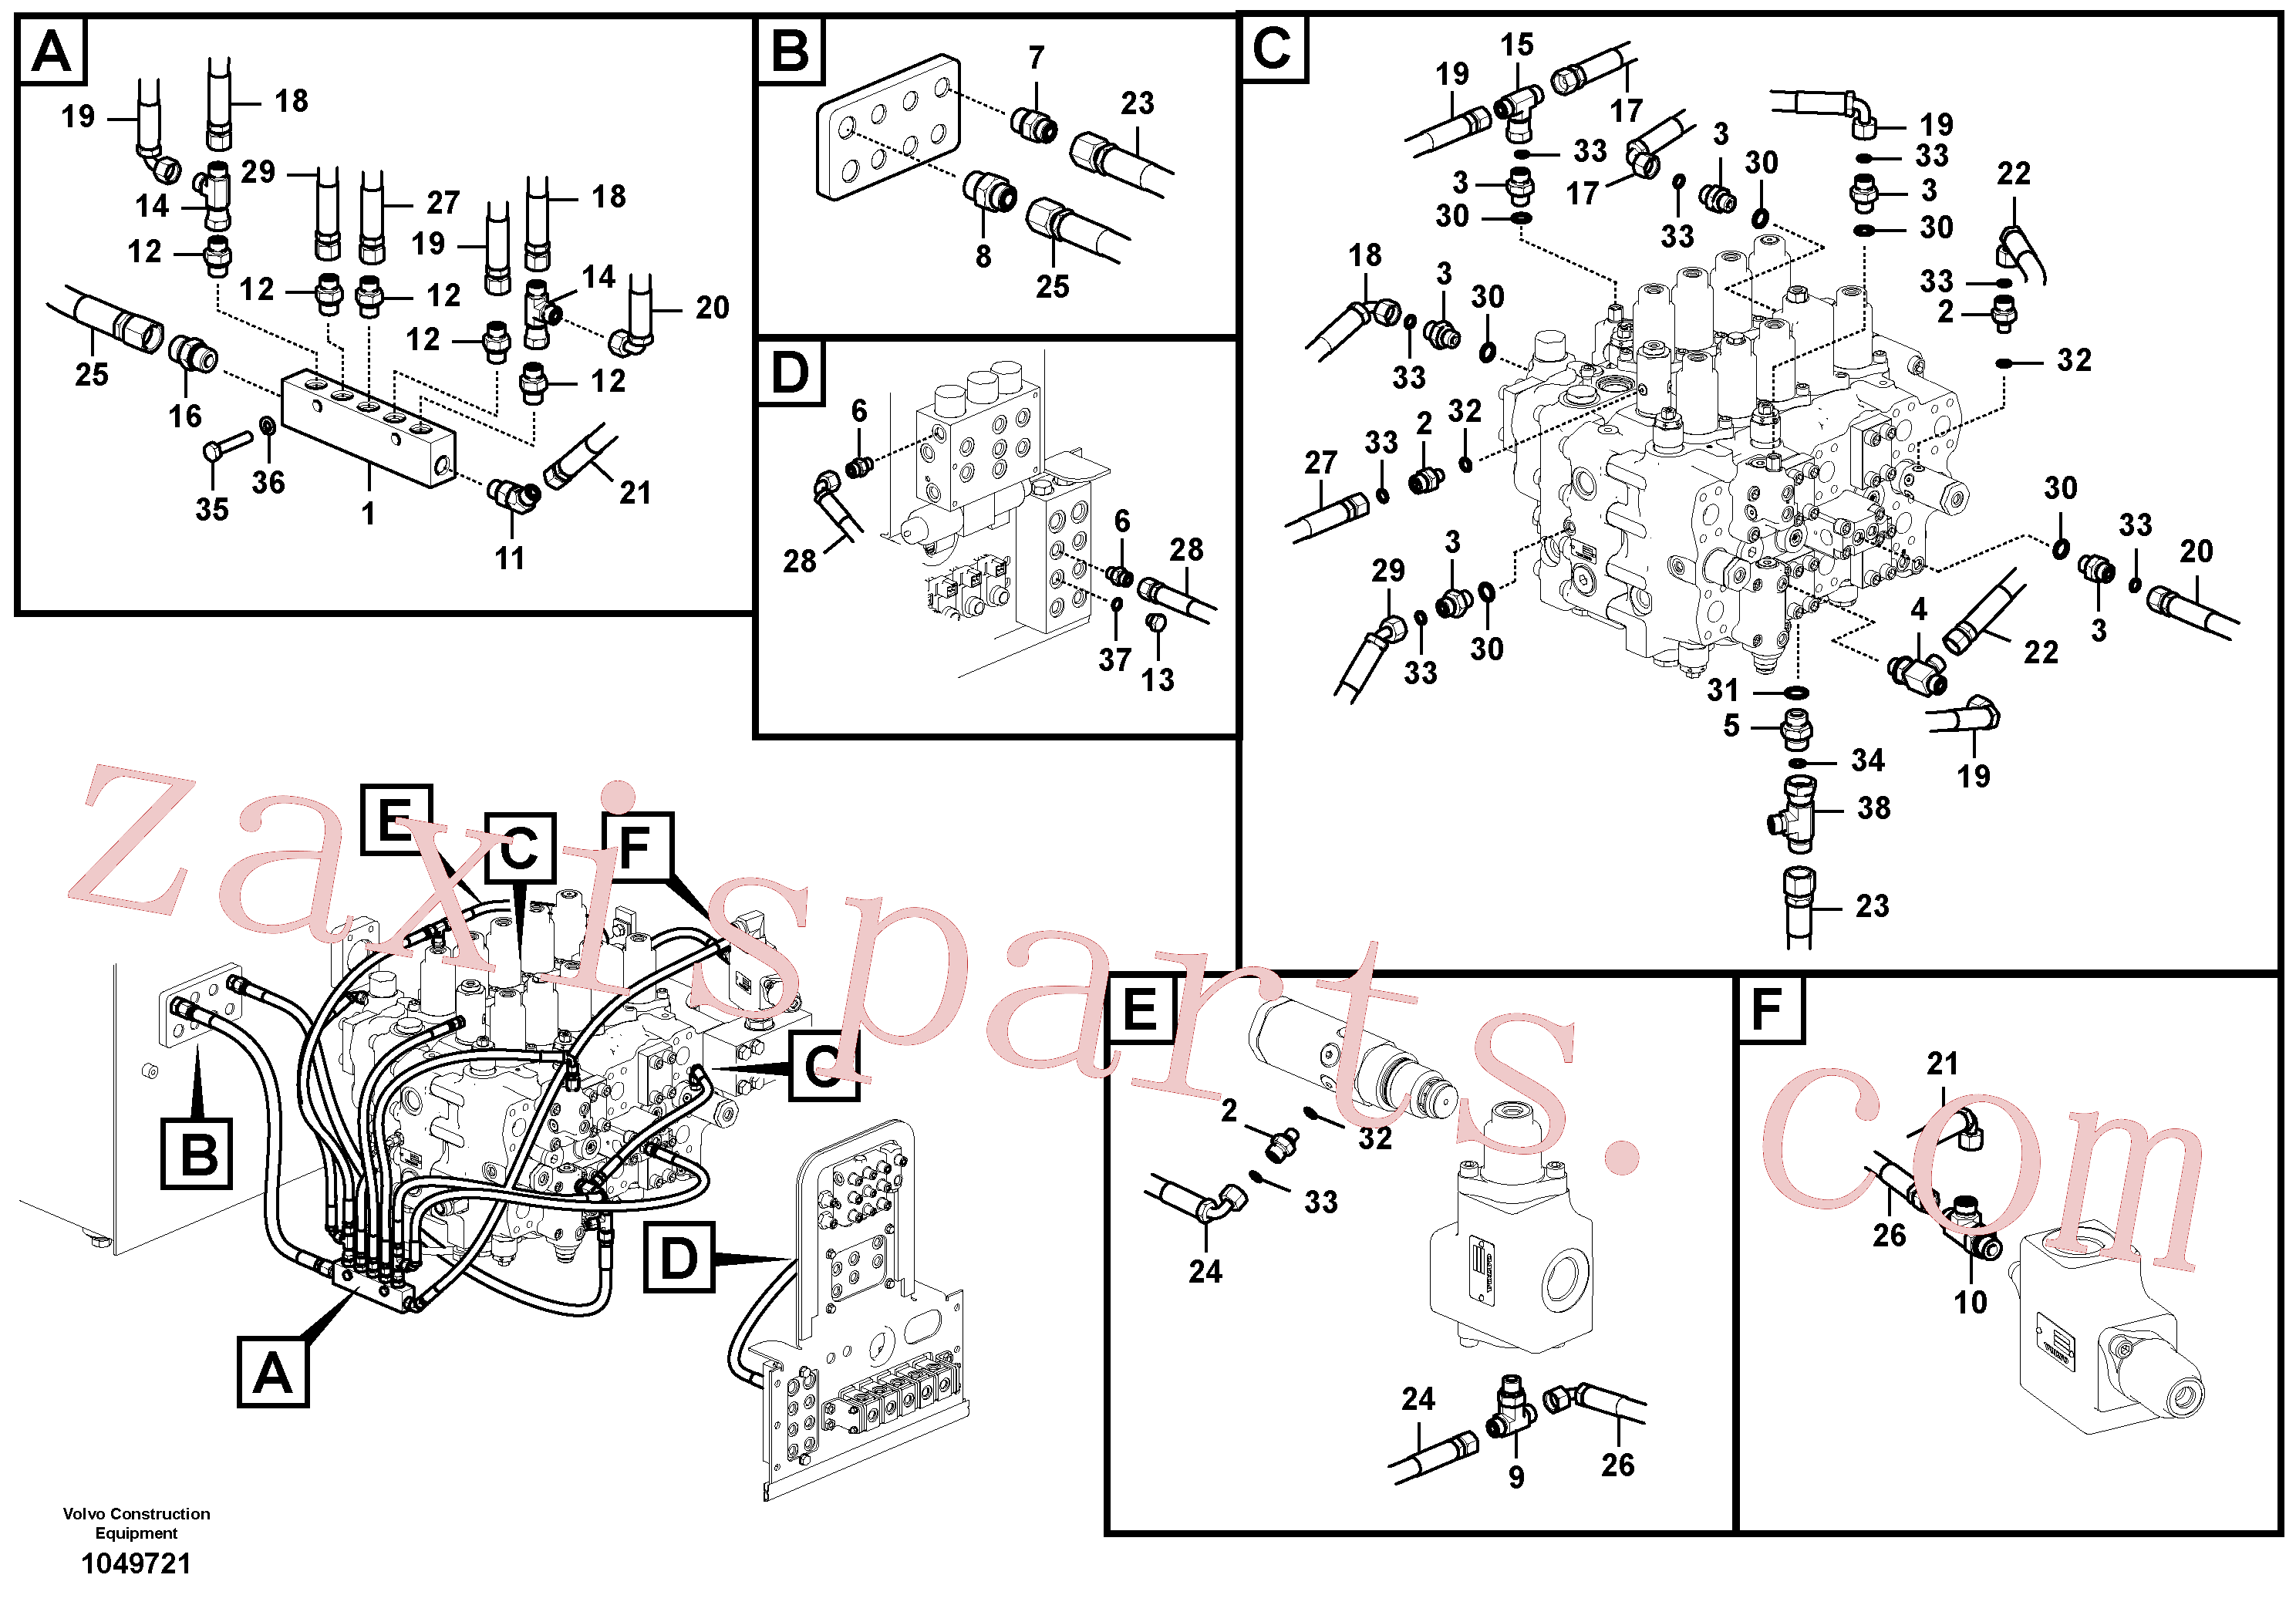 VOE14538879 for Volvo Servo system, control valve piping.(1049721 assembly)